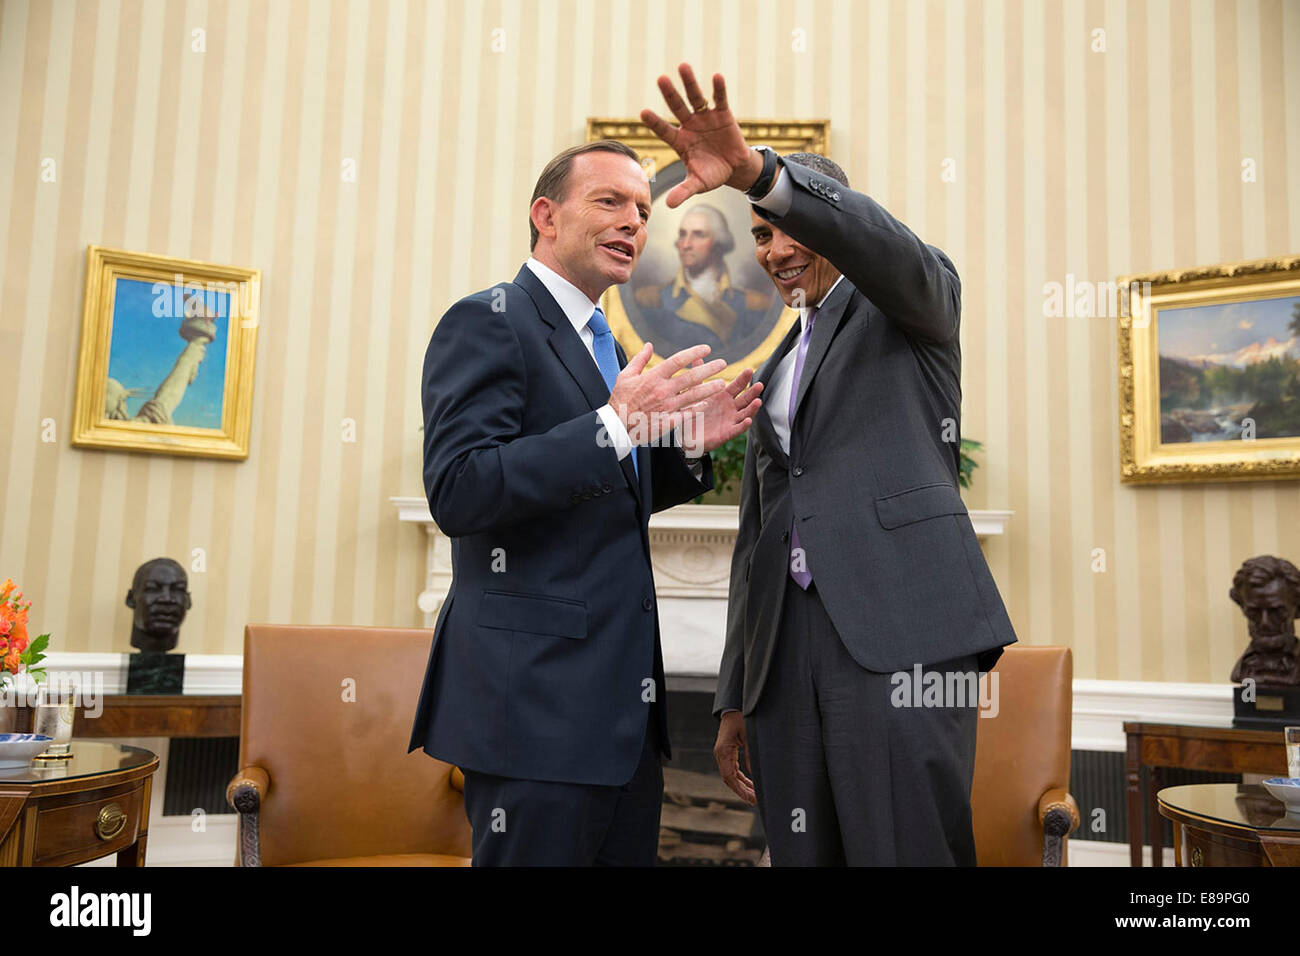 President Barack Obama jokes with Prime Minister Tony Abbott of Australia following a bilateral meeting in the Oval - Stock Image